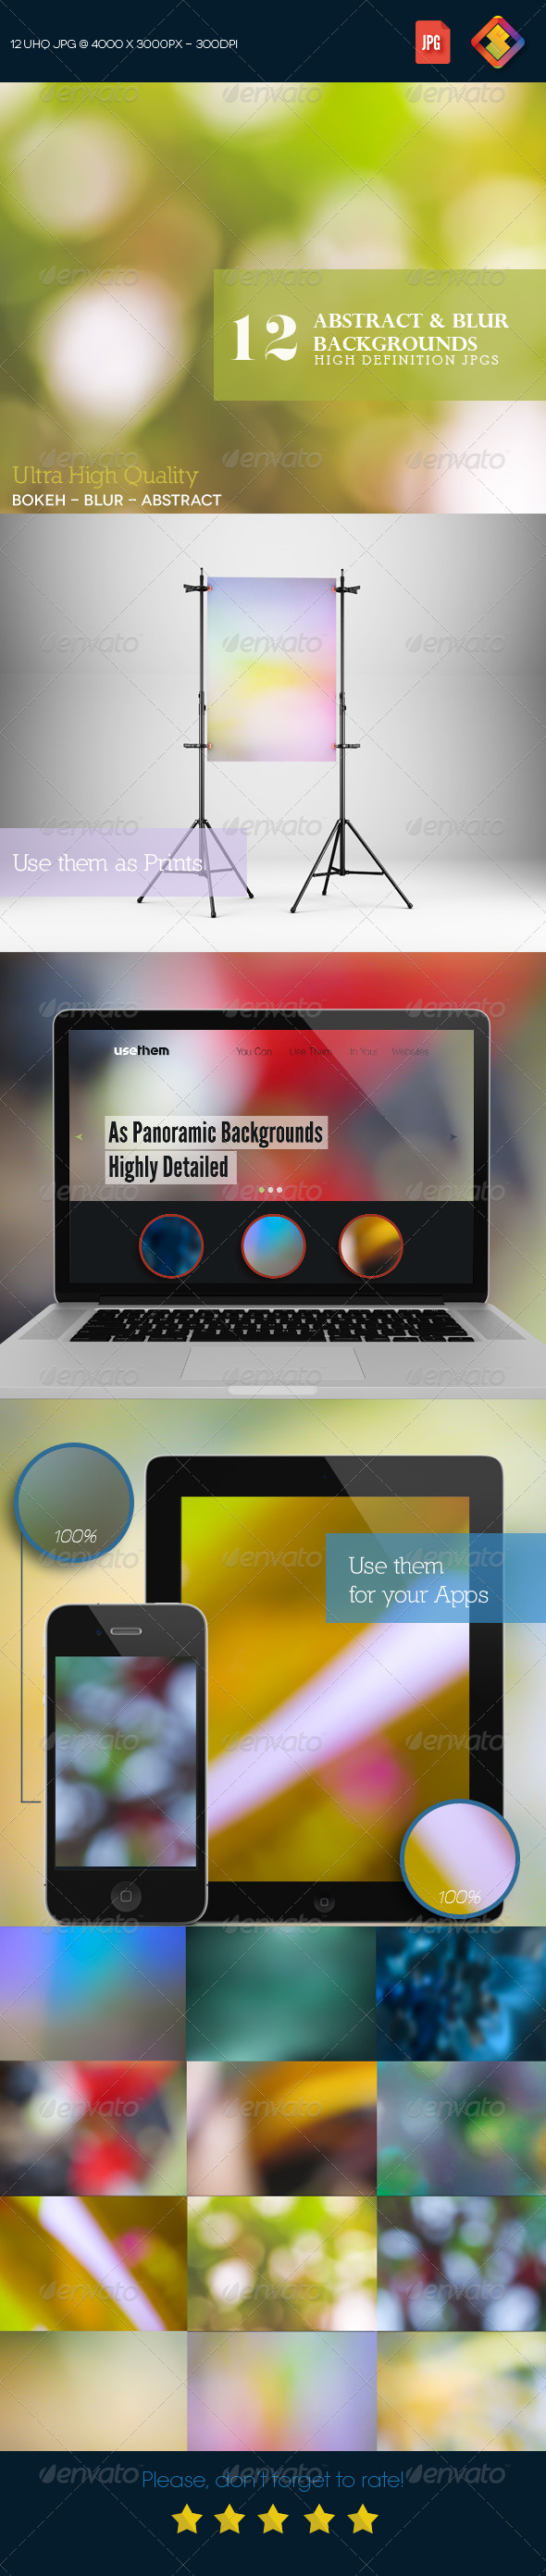 GraphicRiver 12HD Abstract & Blur Backgrounds V5 7656628